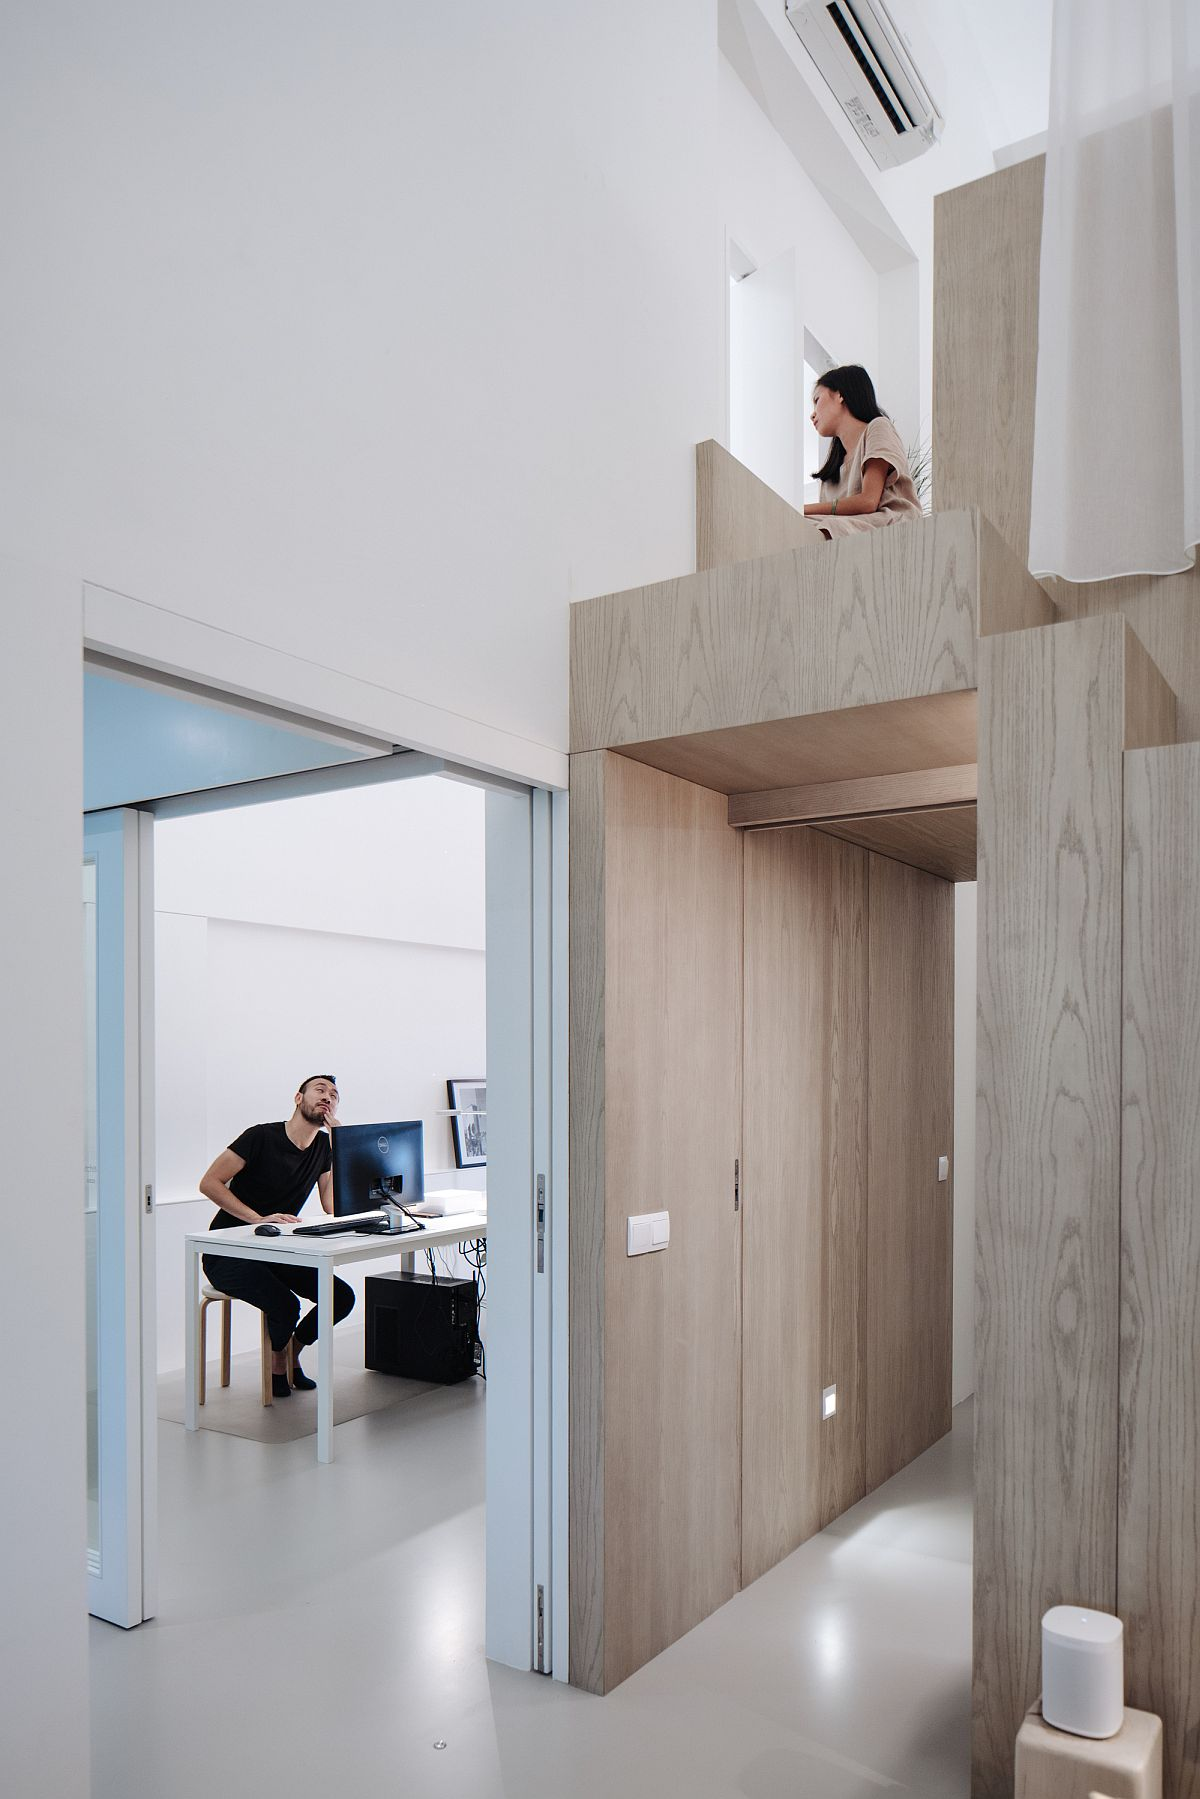 Creating-a-link-between-the-loft-level-bedroom-and-the-office-space-of-the-apartment-10279